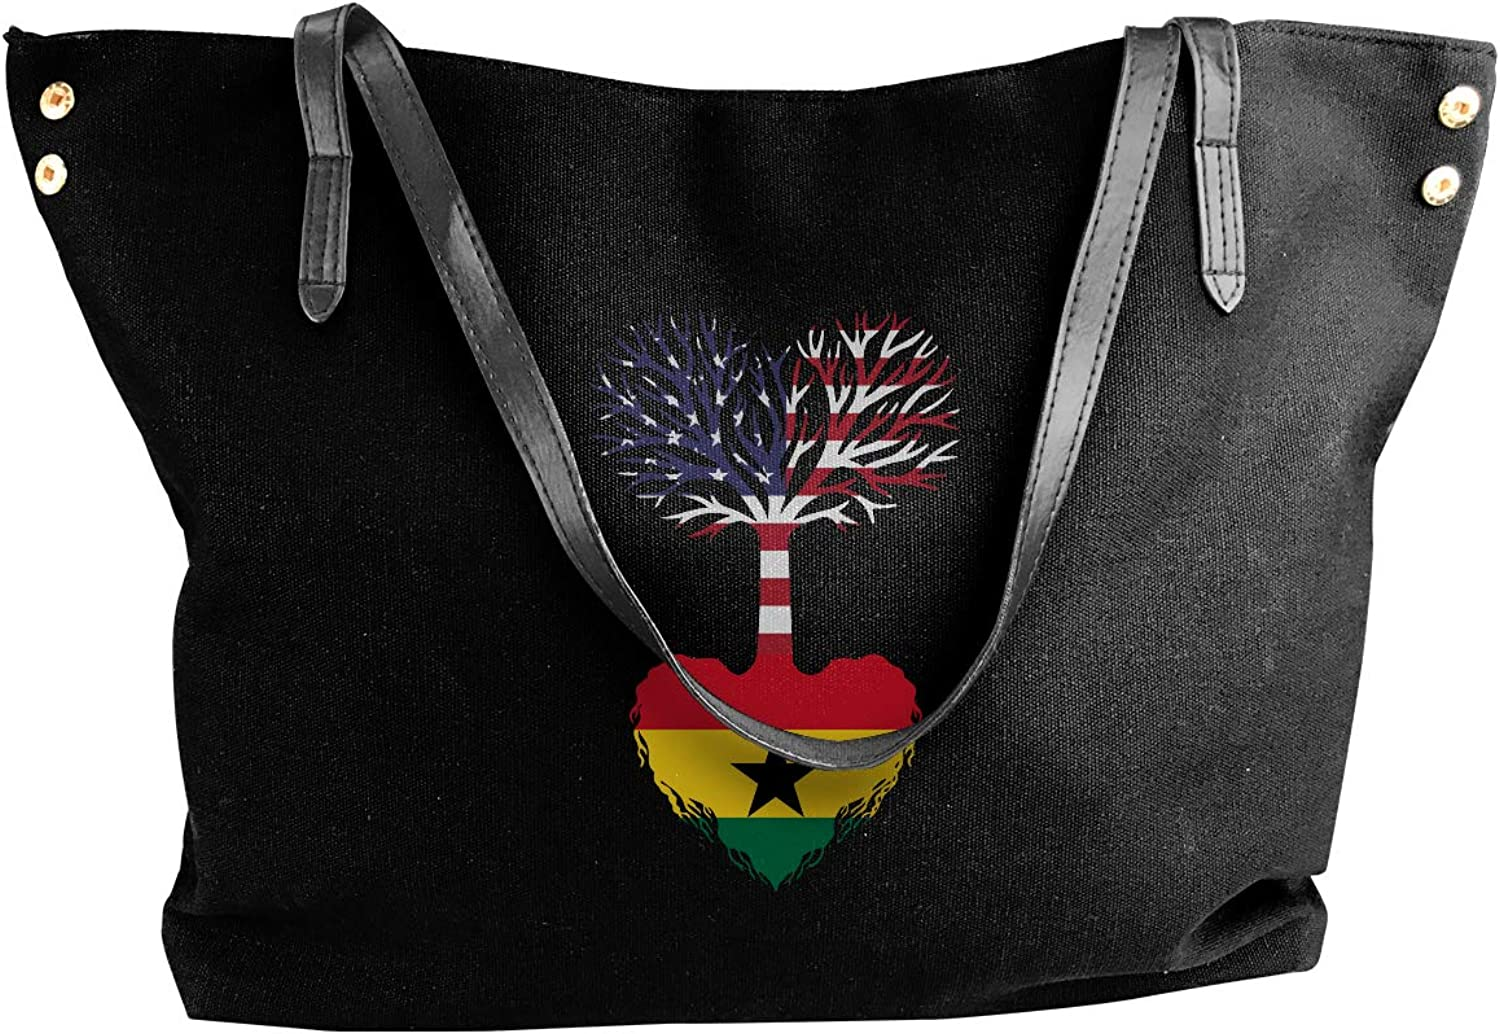 American Grown Ghana Root Women'S Casual Canvas Handbag For Travel Work Bag